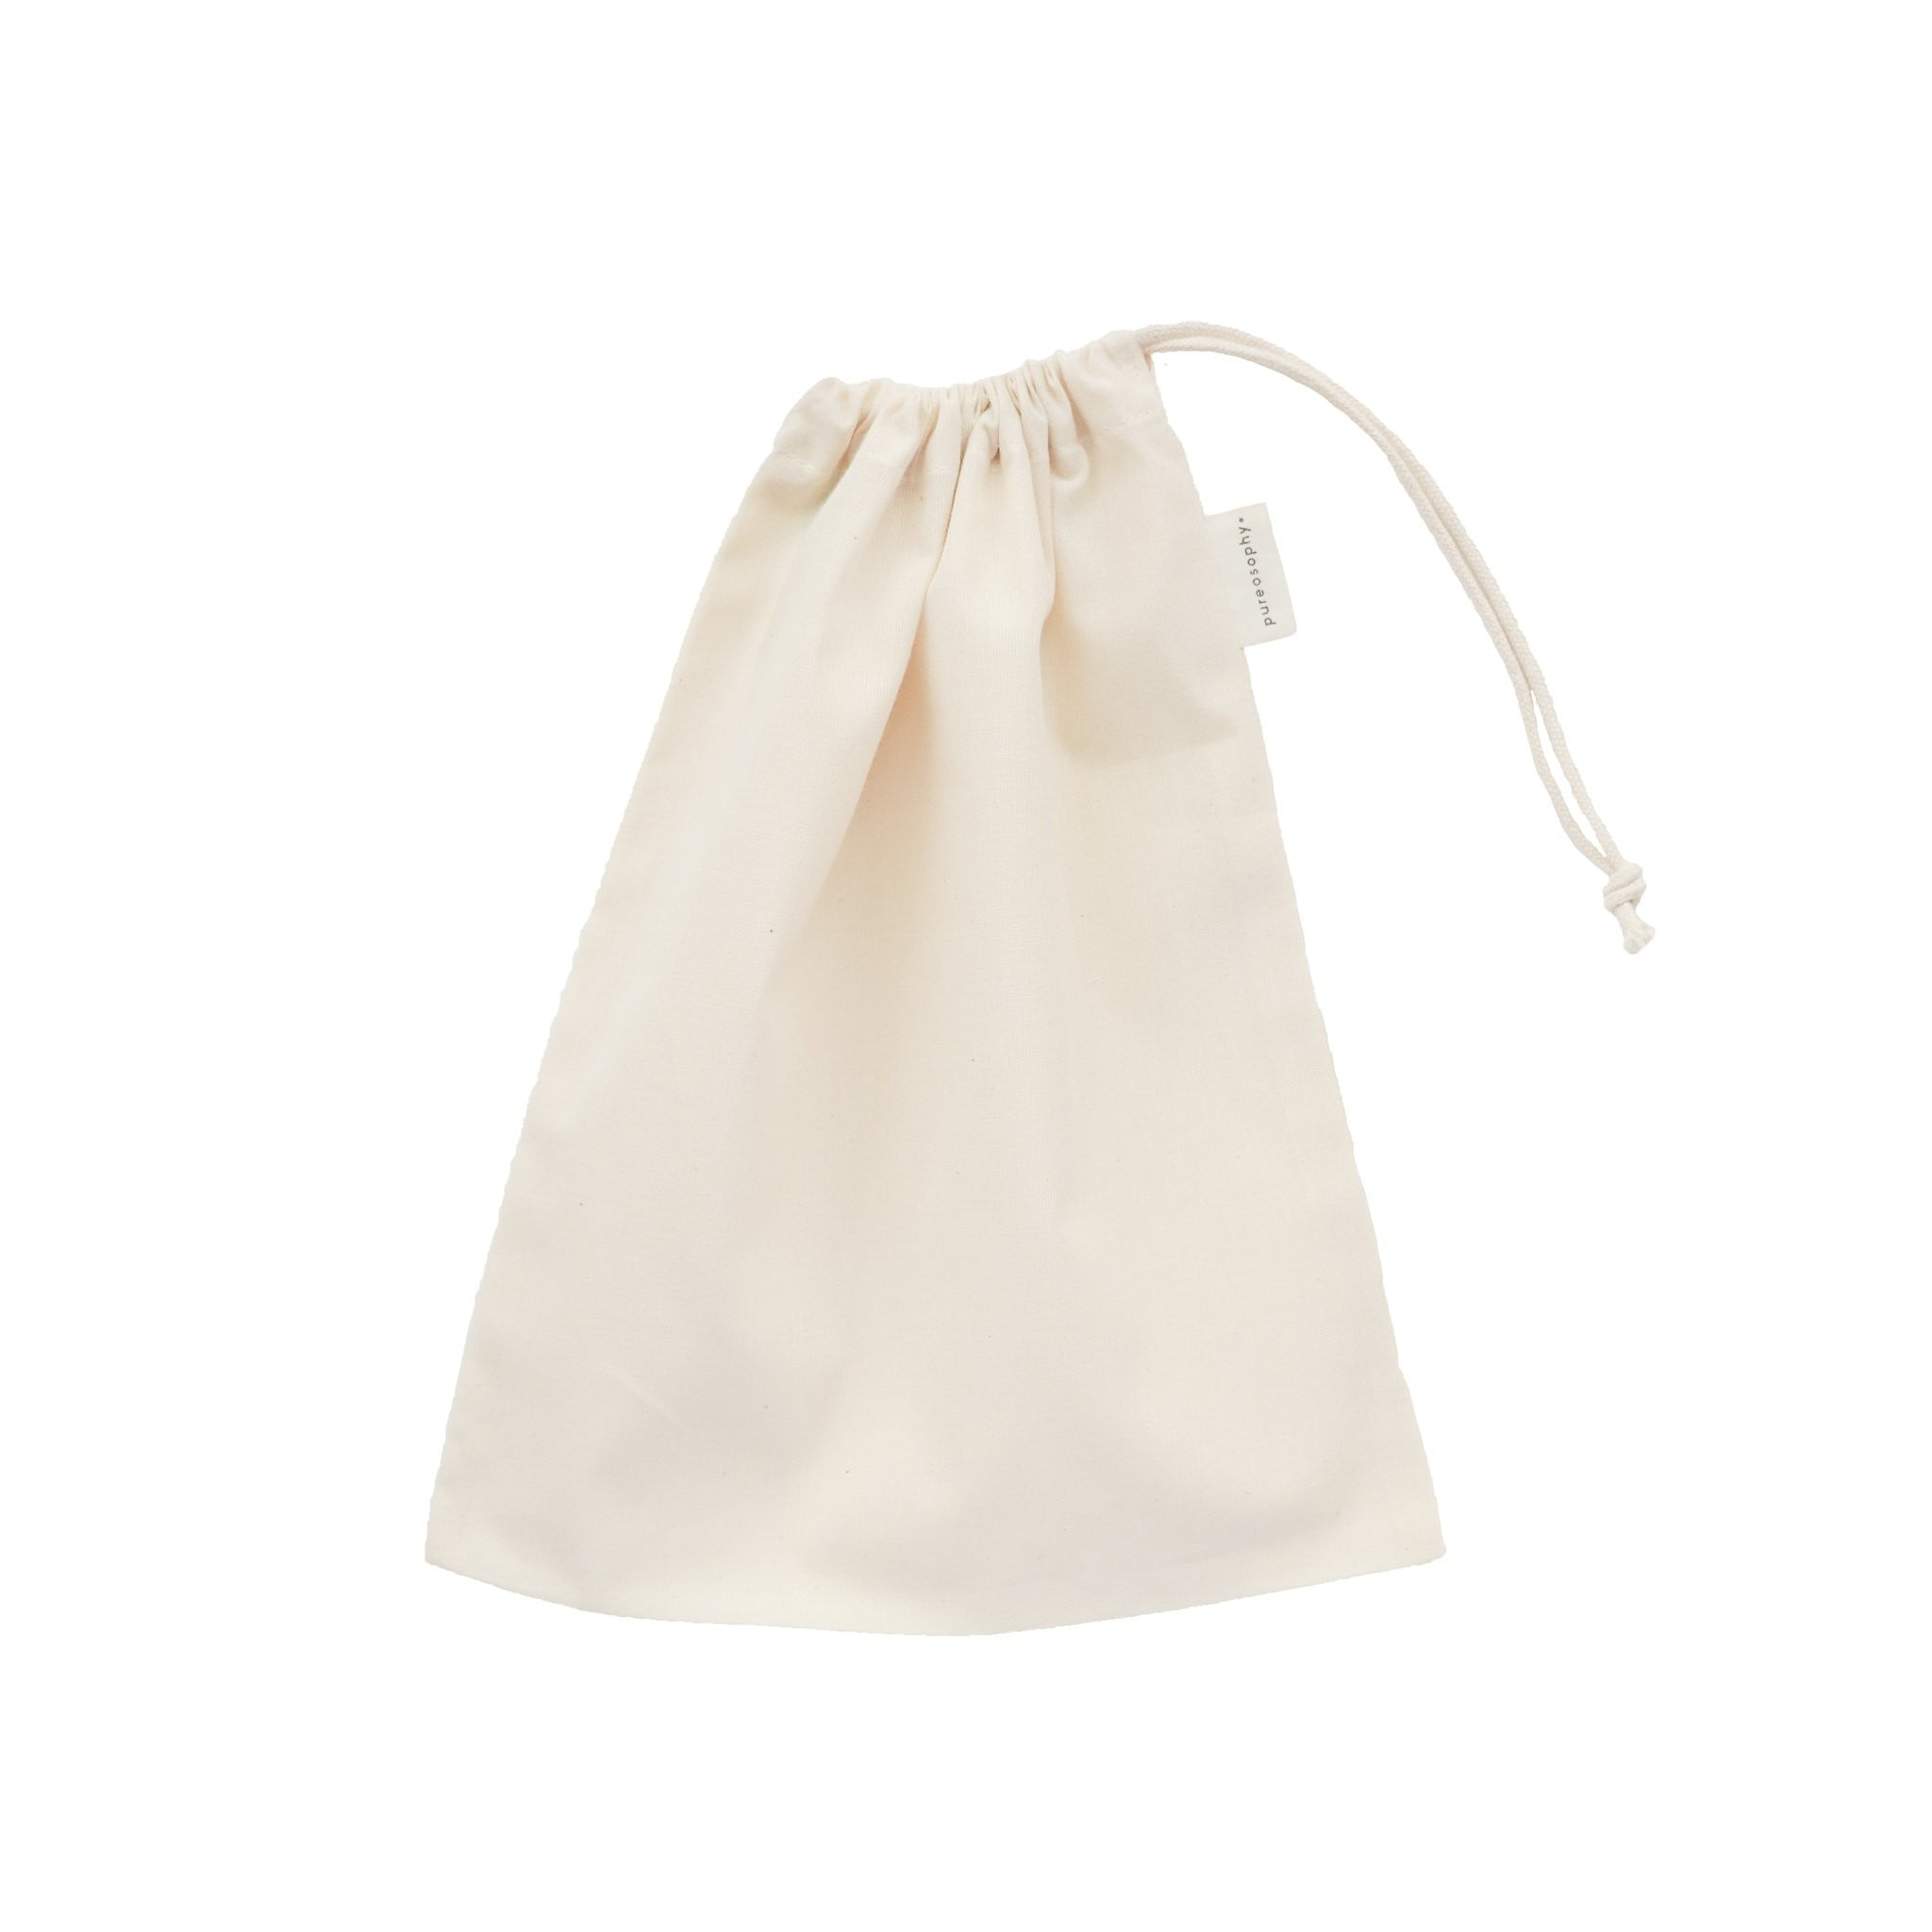 Organic cotton produce bag in medium